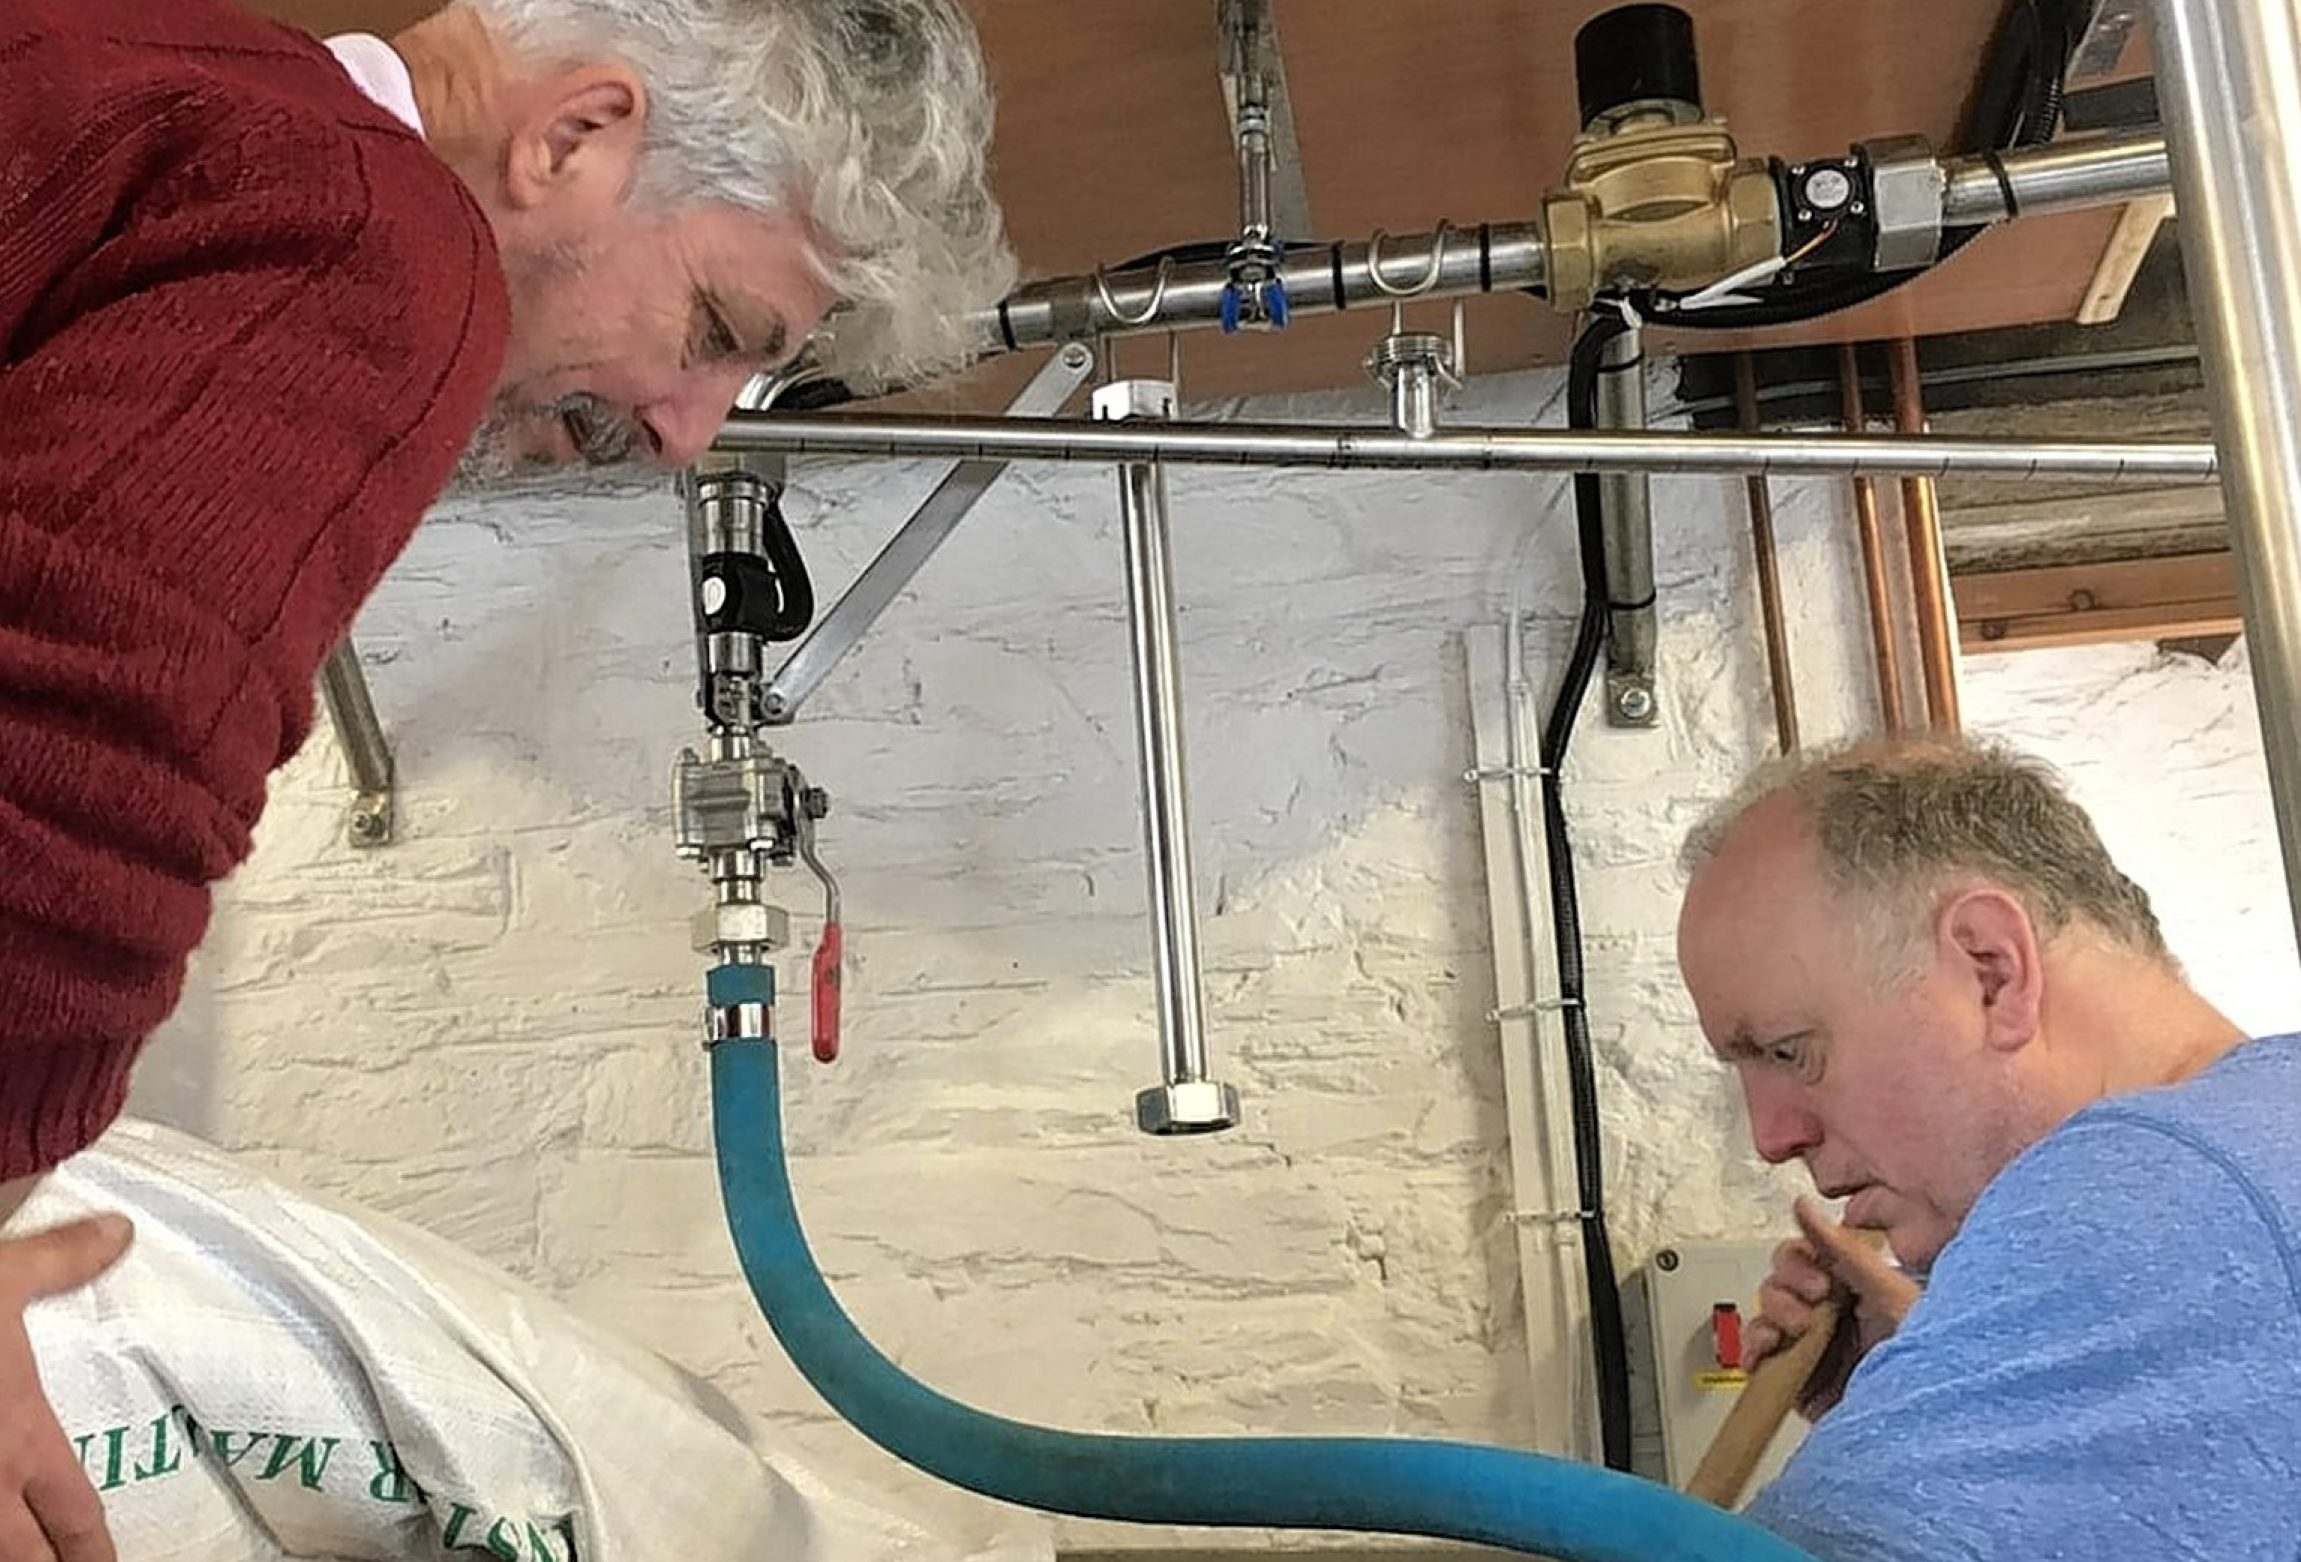 barnabys-brewhouse-news-western-morning-news-micro-brewery-devon